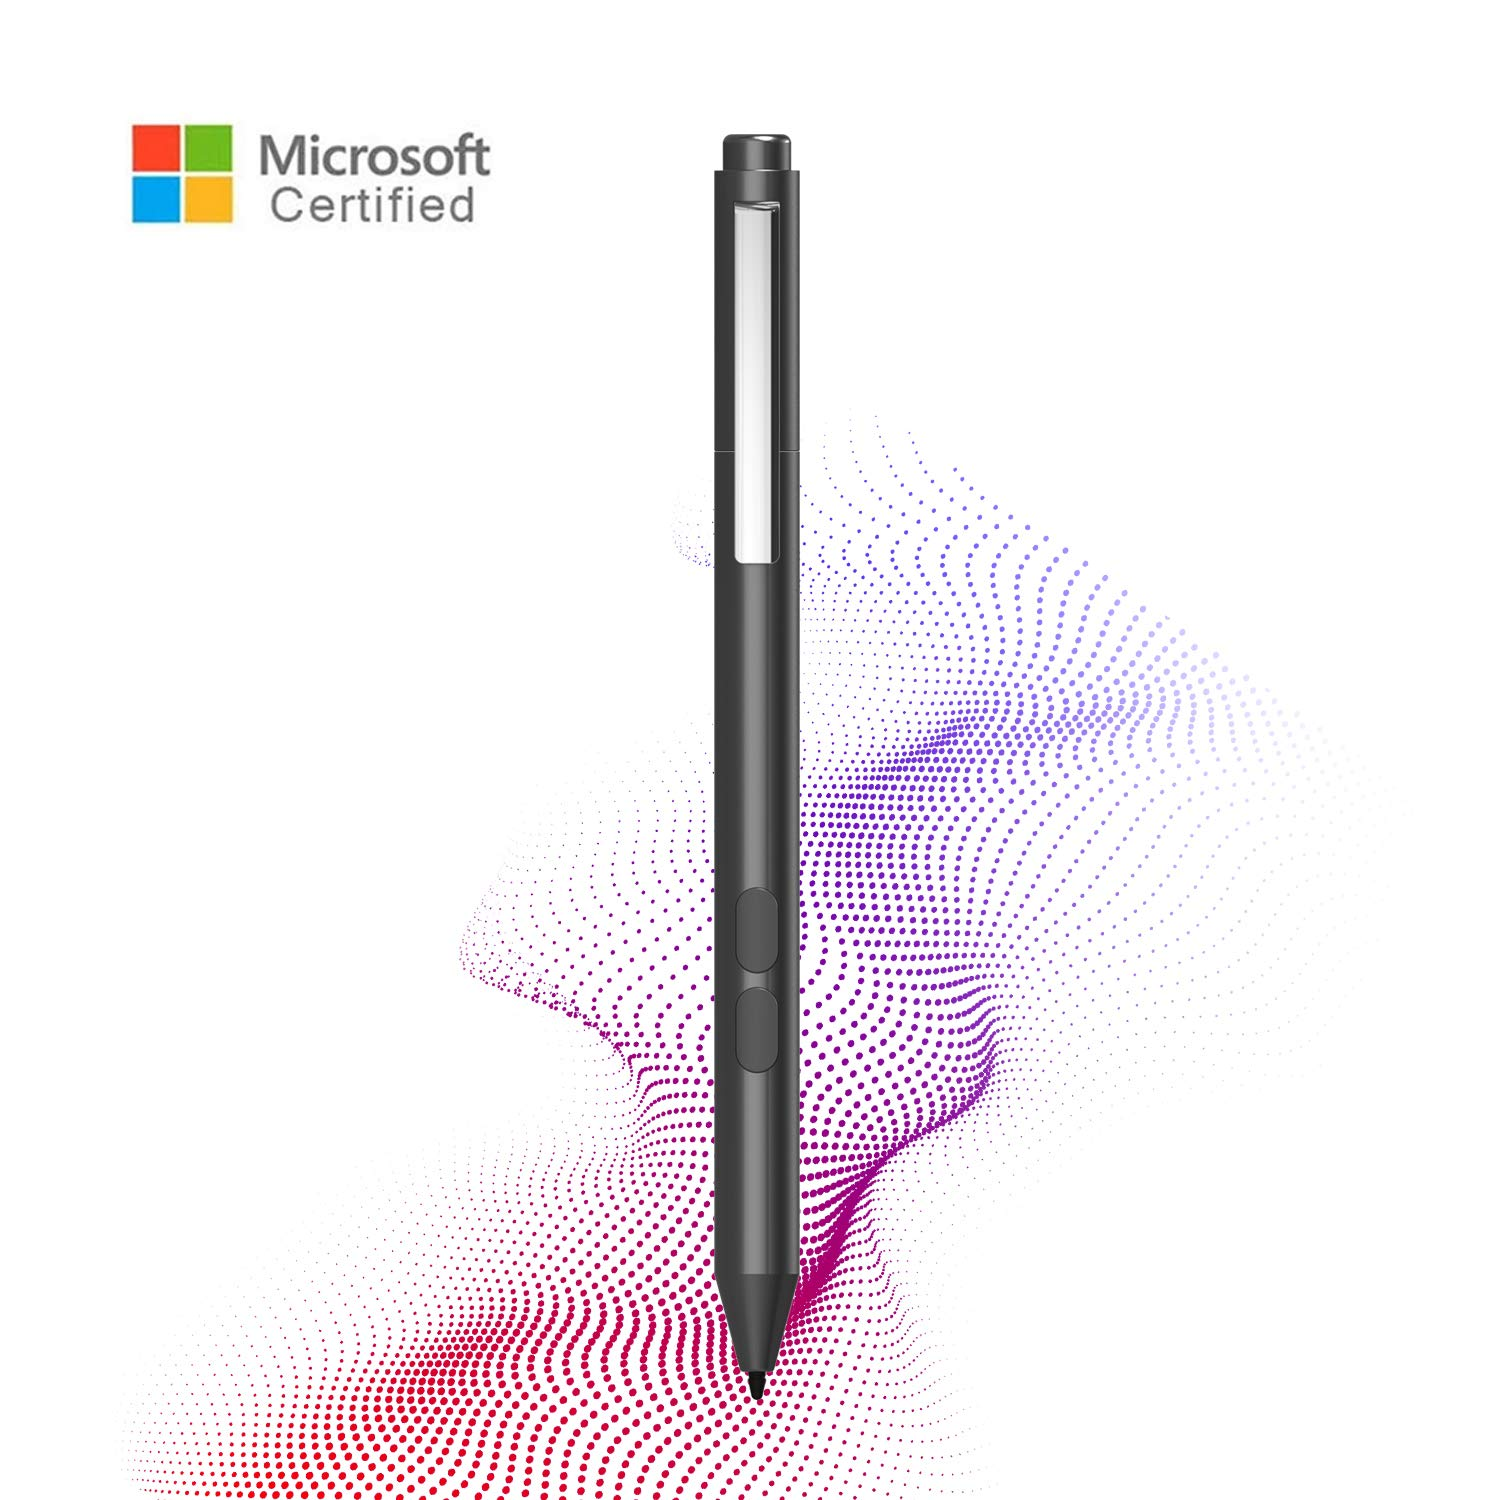 VORCSBINE Active Stylus Pen for Microsoft Surface Pro X/7/6/5/4/3 with 1024 Pressure Sensitivity, Surface Book 1/2, Surface Studio/Go,Surface Laptop 3-Grey by VORCSBINE